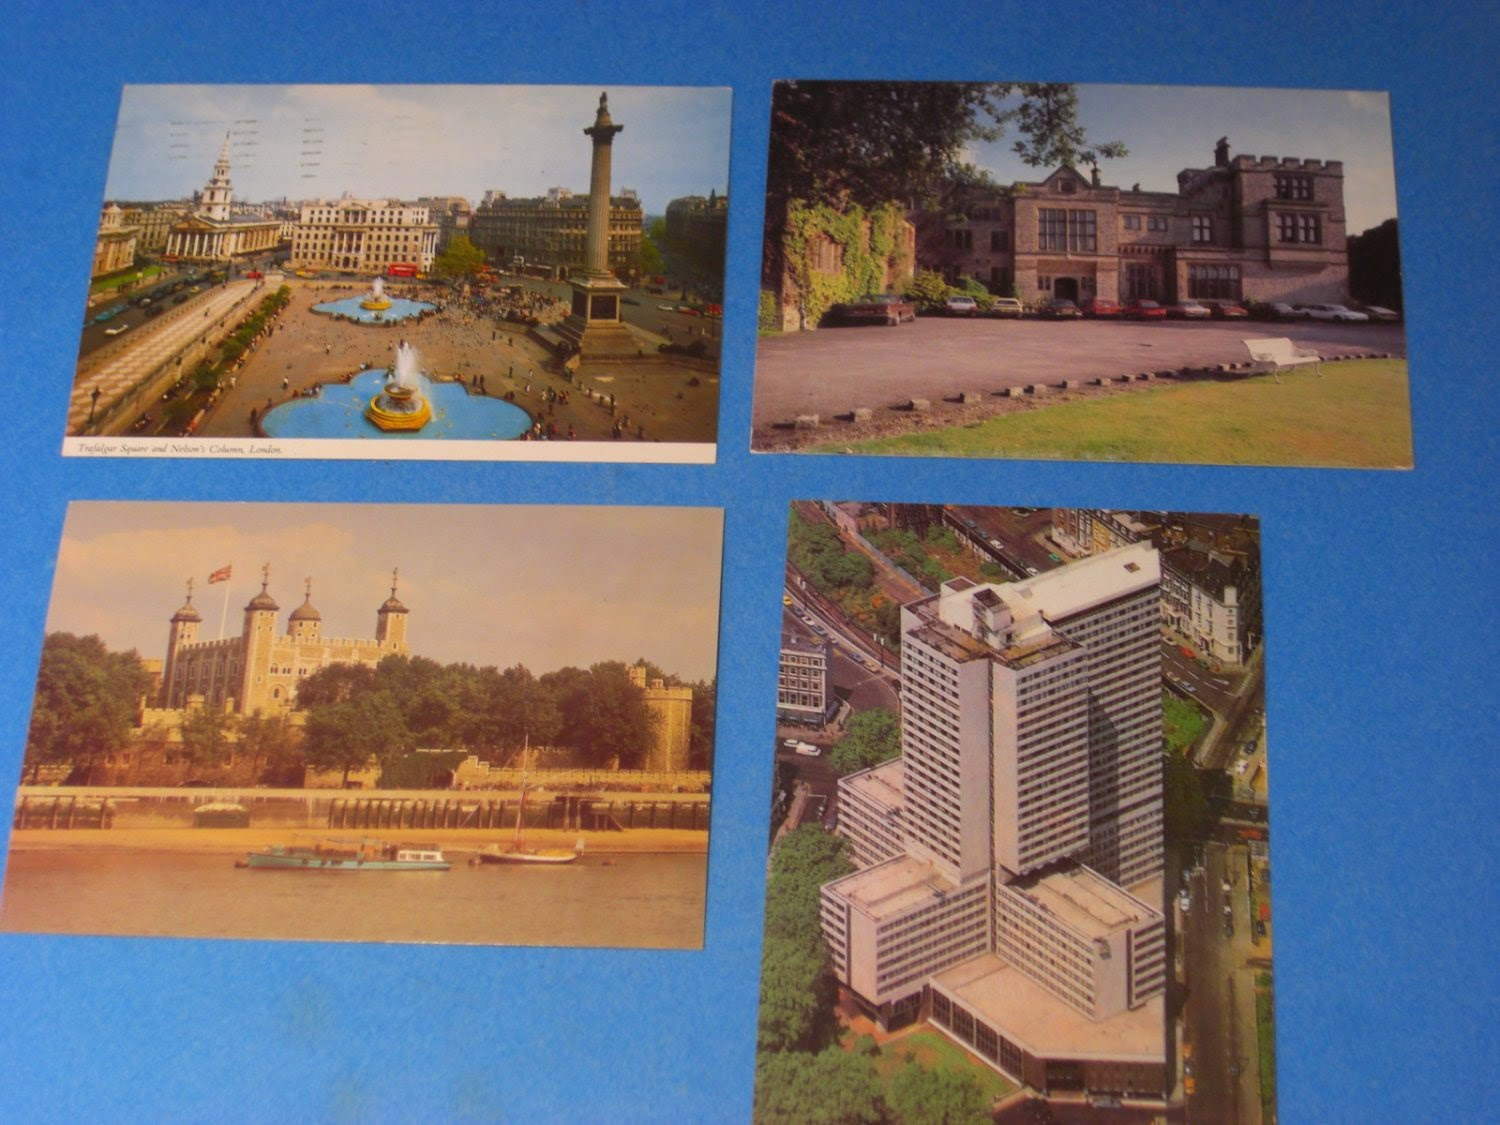 http://bargaincart.ecrater.com/p/21940343/tower-of-london-and-river-thames-postcards?keywords=tower